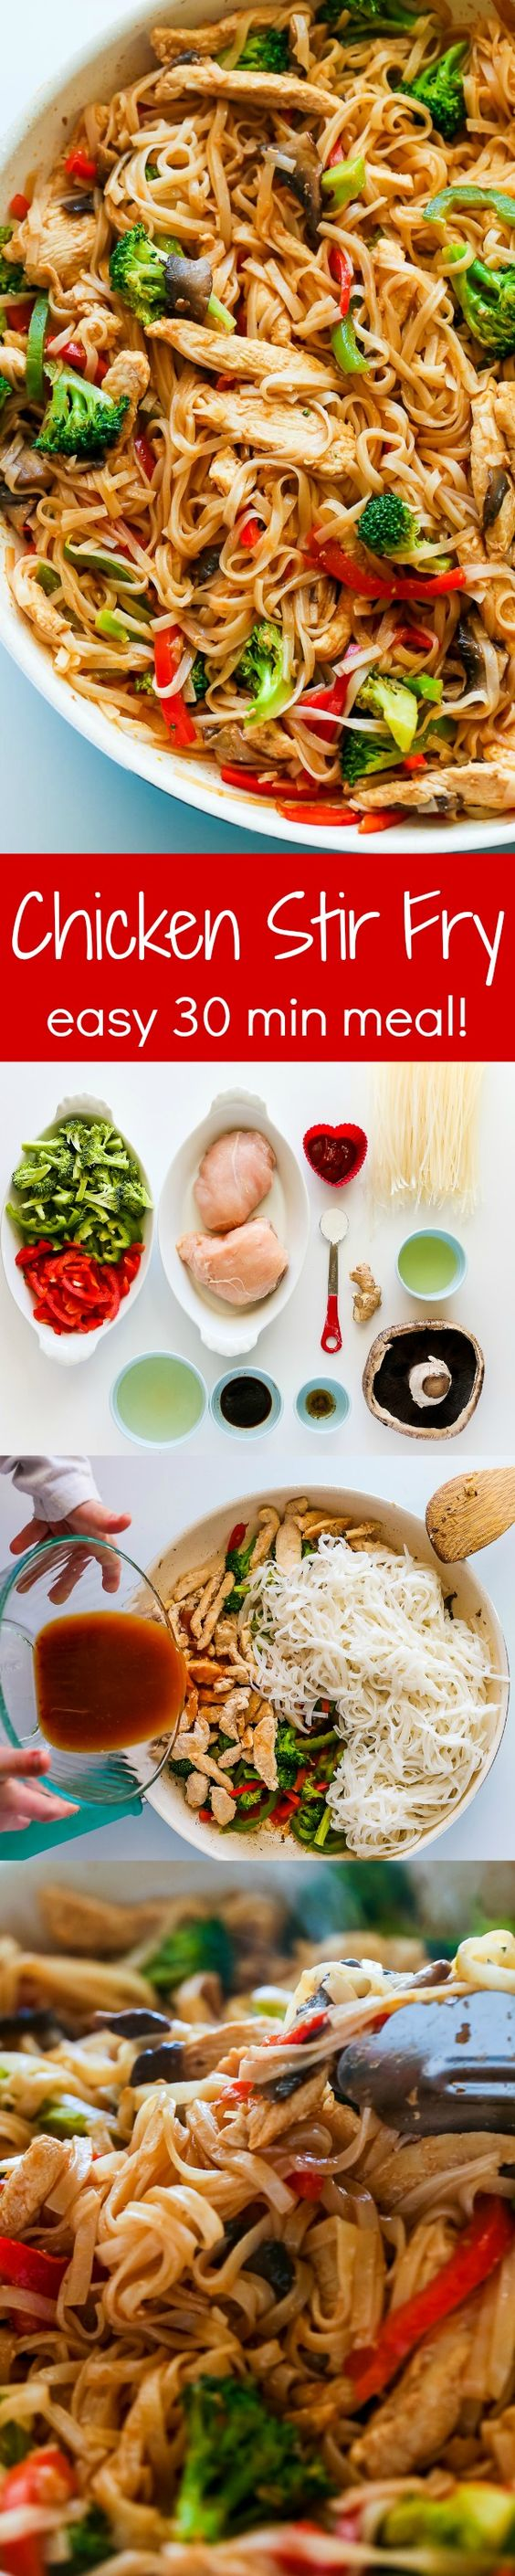 Chicken Stir Fry with Rice Noodles Recipe via Natasha's Kitchen - This is an easy and delicious weeknight meal loaded with healthy ingredients. A one-pan, 30 minute chicken stir fry recipe. - The BEST 30 Minute Meals Recipes - Easy, Quick and Delicious Family Friendly Lunch and Dinner Ideas